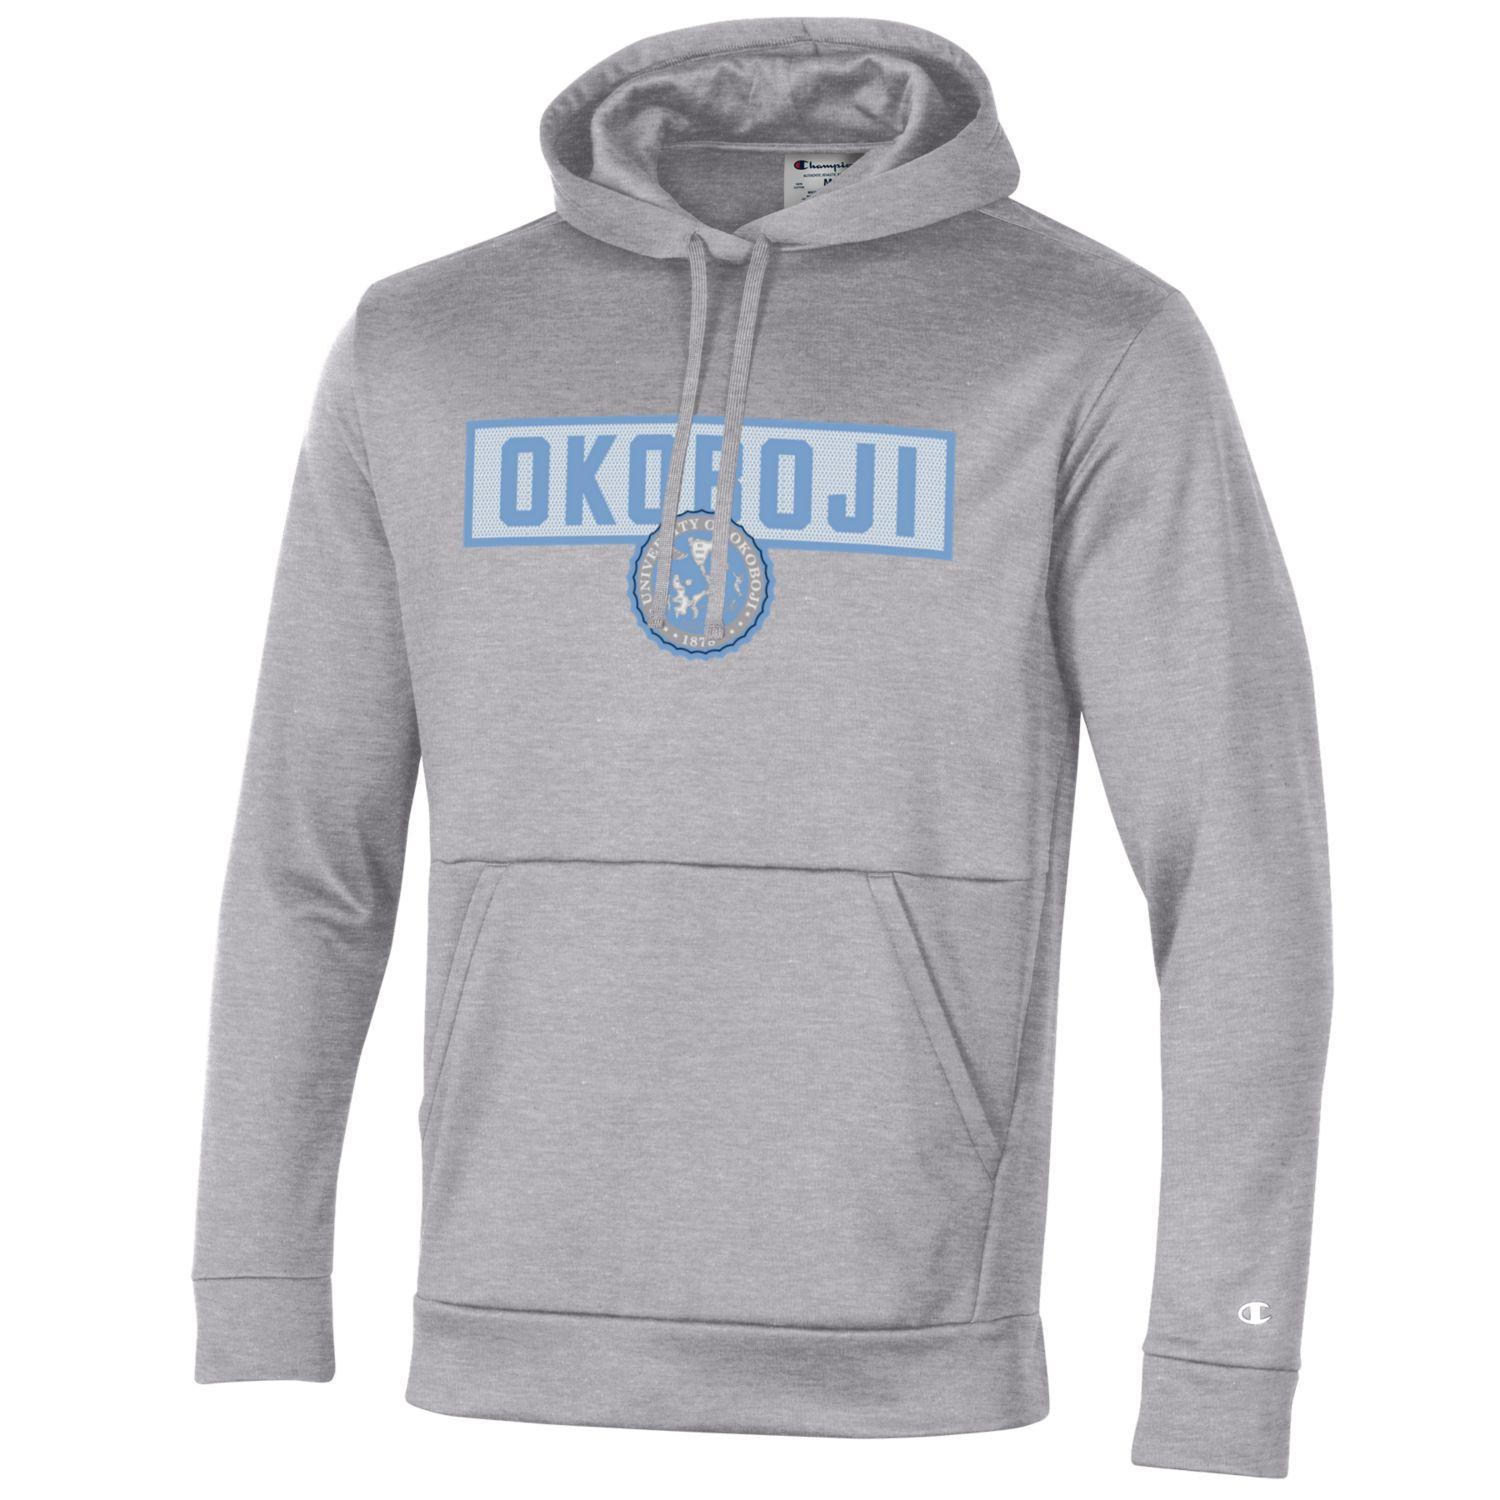 OKOBOJI MEN'S FIELD DAY PULL OVER HOOD - OXFORD HEATHER